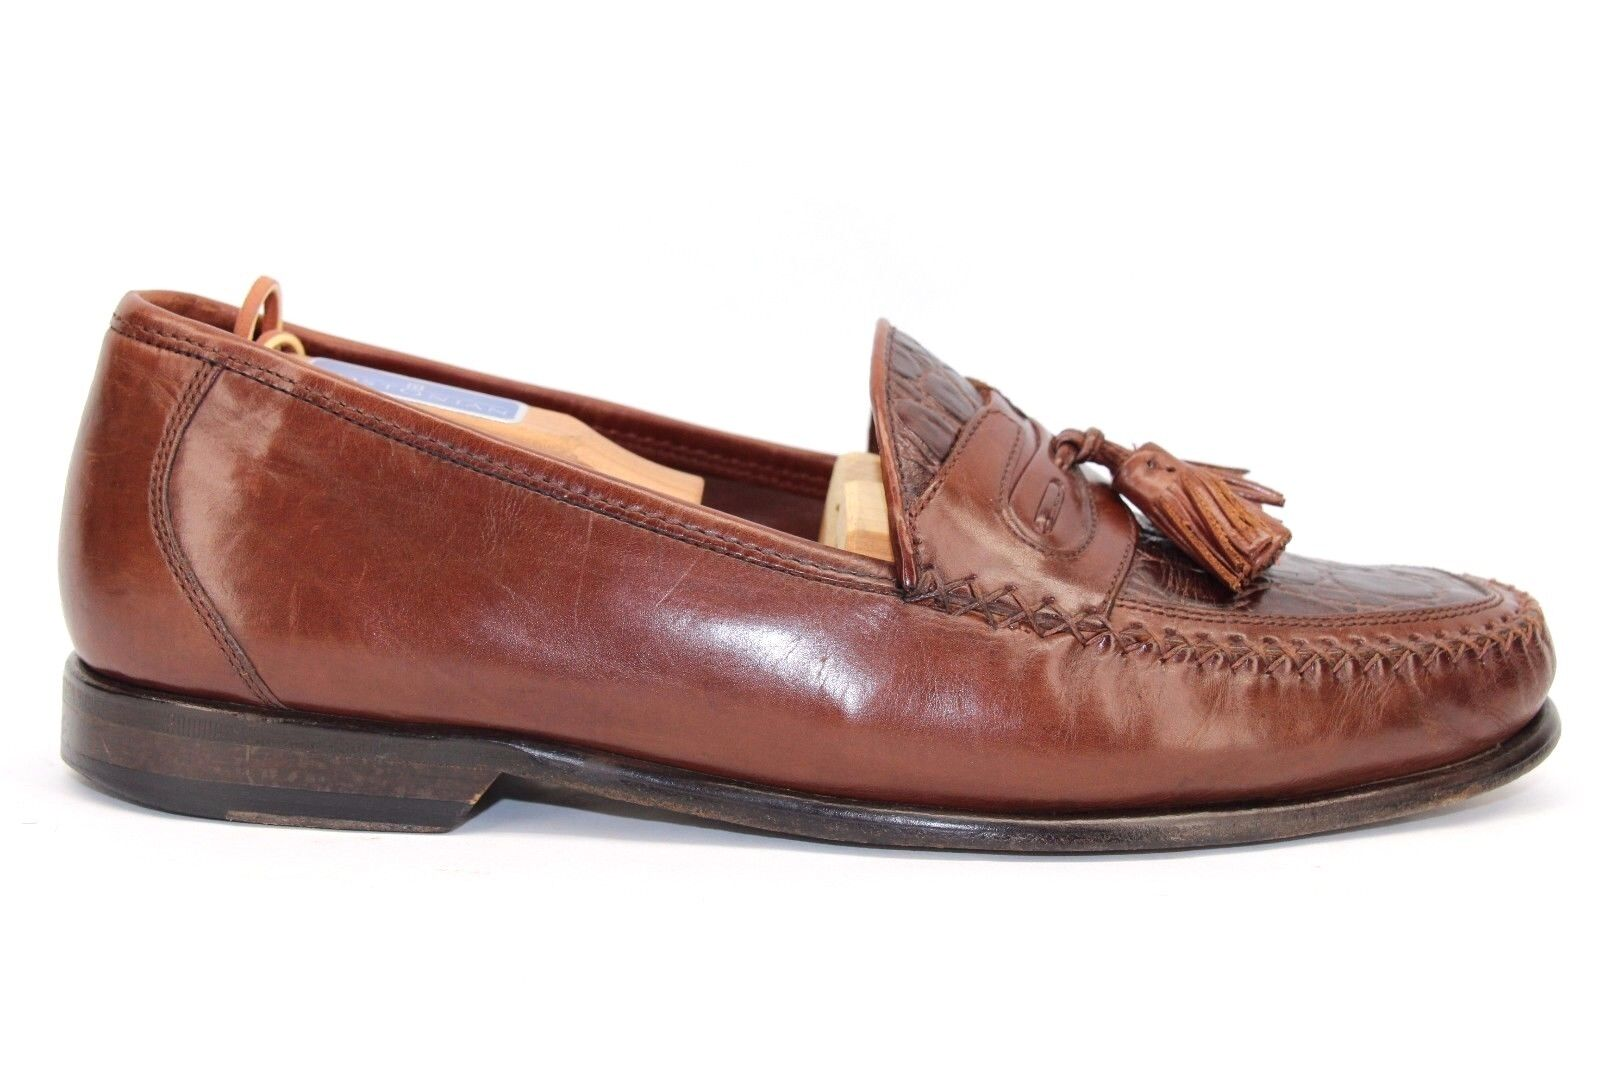 Johnston & Murphy braun Leather Embossed Vamp Vamp Vamp Moc Toe Tassel Loafers Größe 9 M cb3622